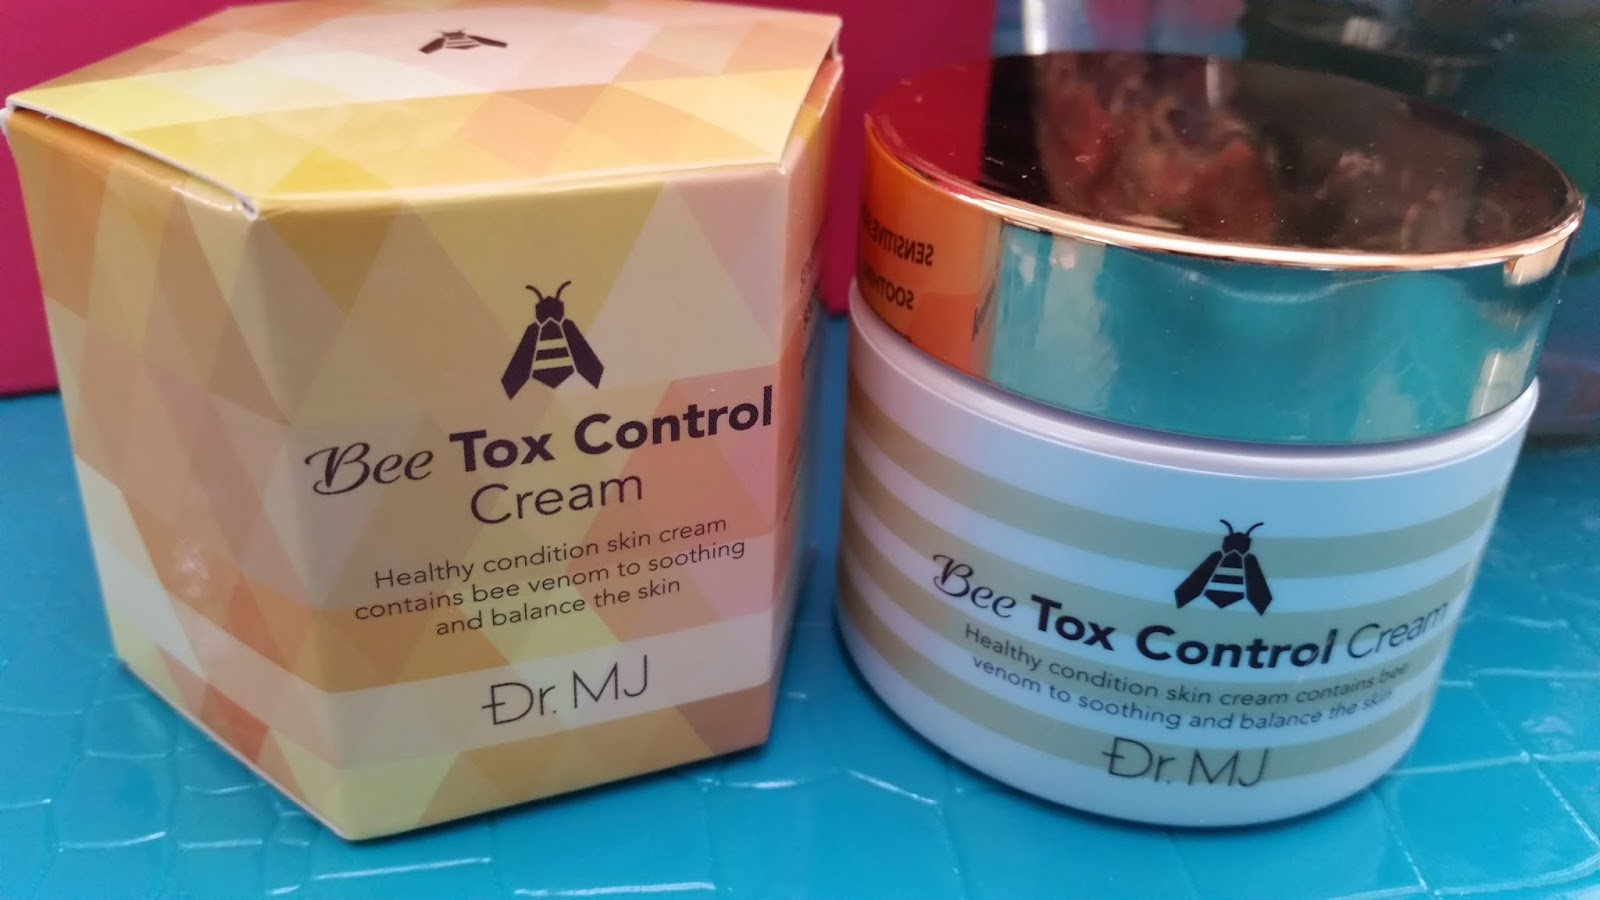 Dr. MJ Bee Tox Control Cream